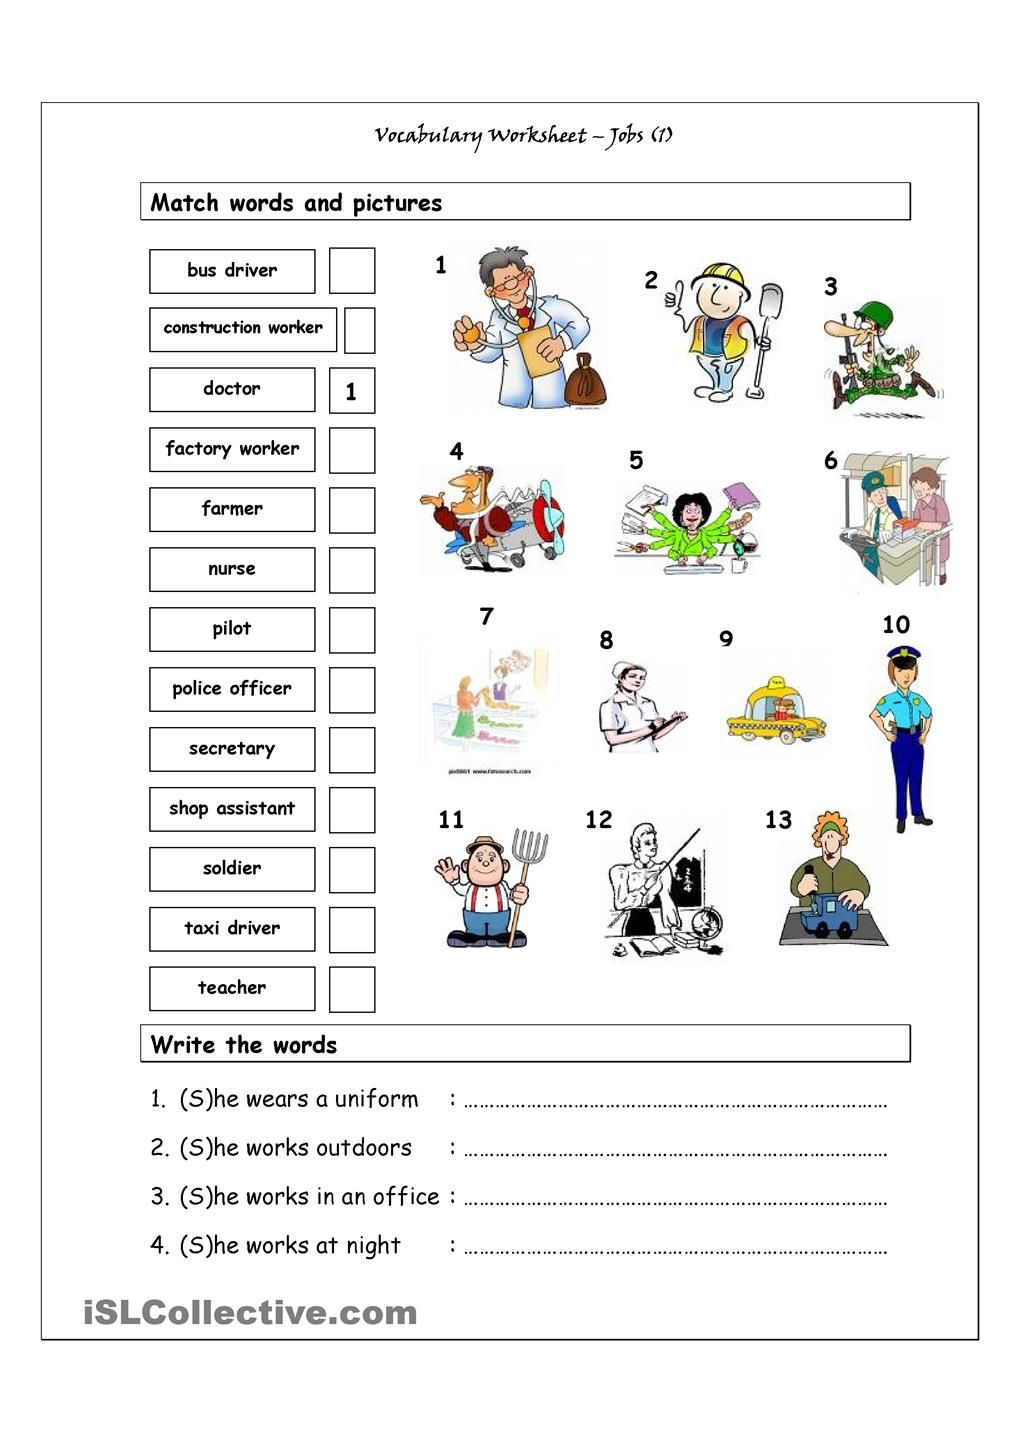 Worksheets Vocabulary Worksheet vocabulary matching worksheet jobs 1 english worksheets good for the younger esl teens